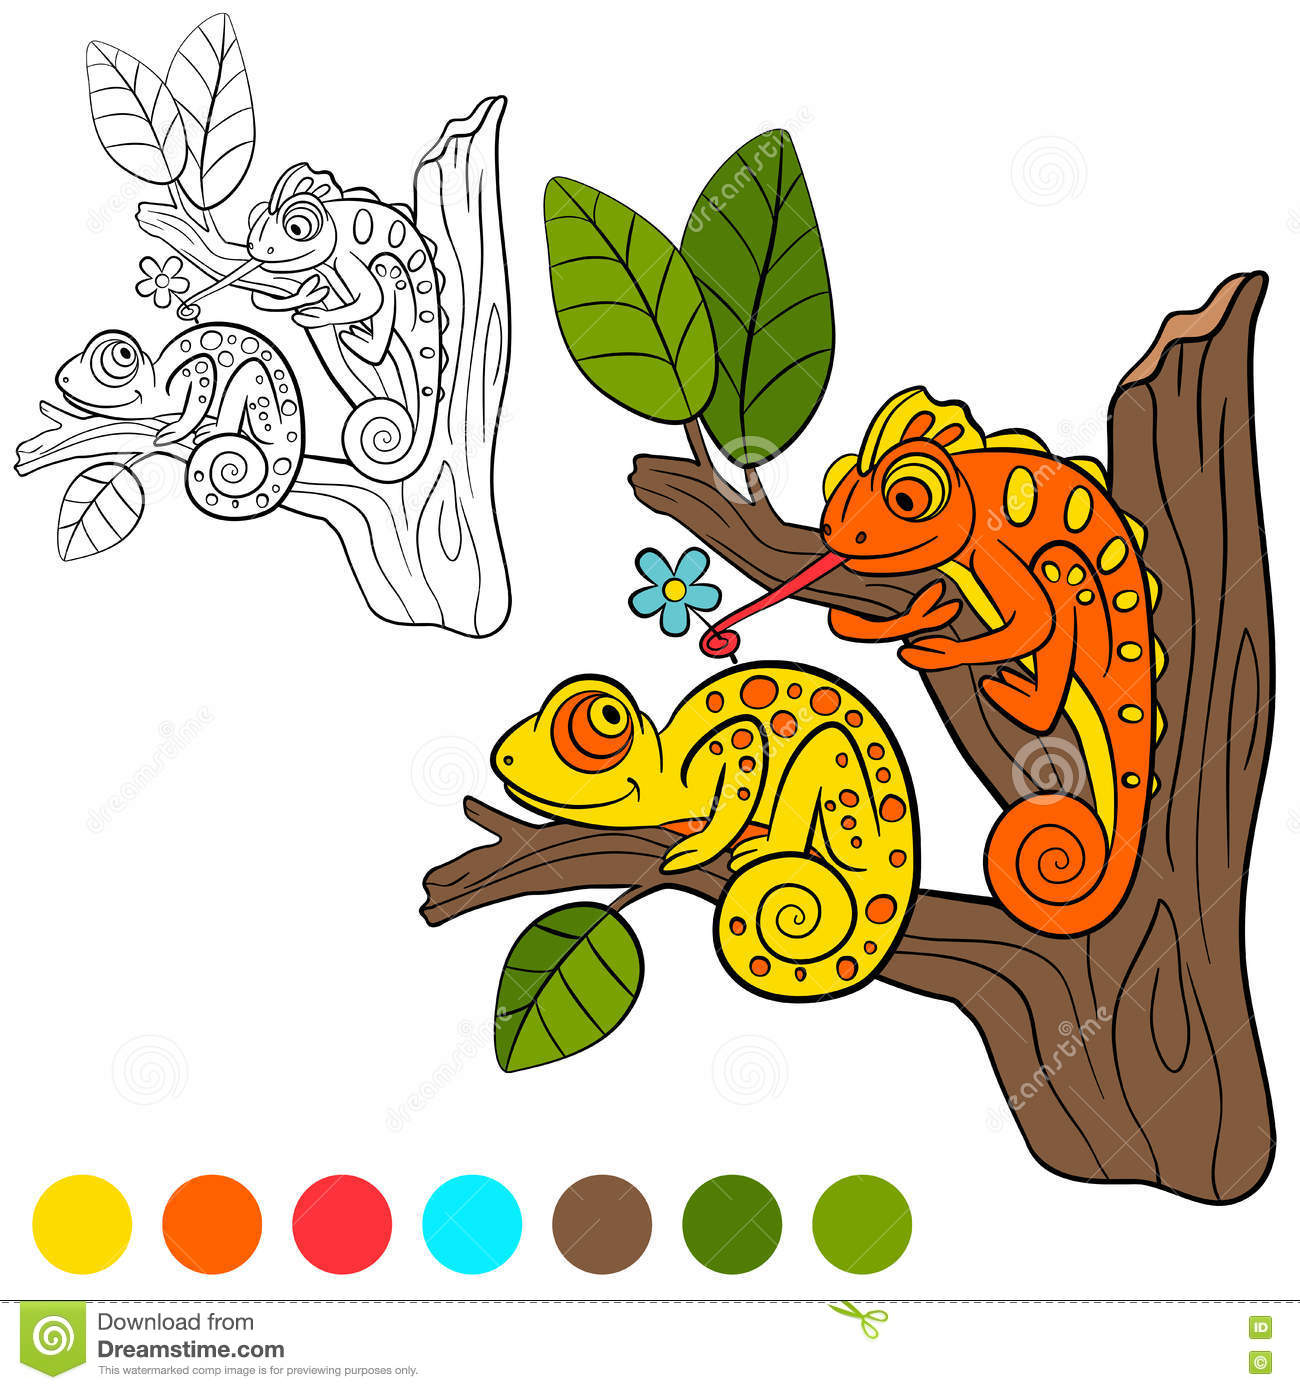 coloring page color me chameleon two little cute chameleon sits tree branch